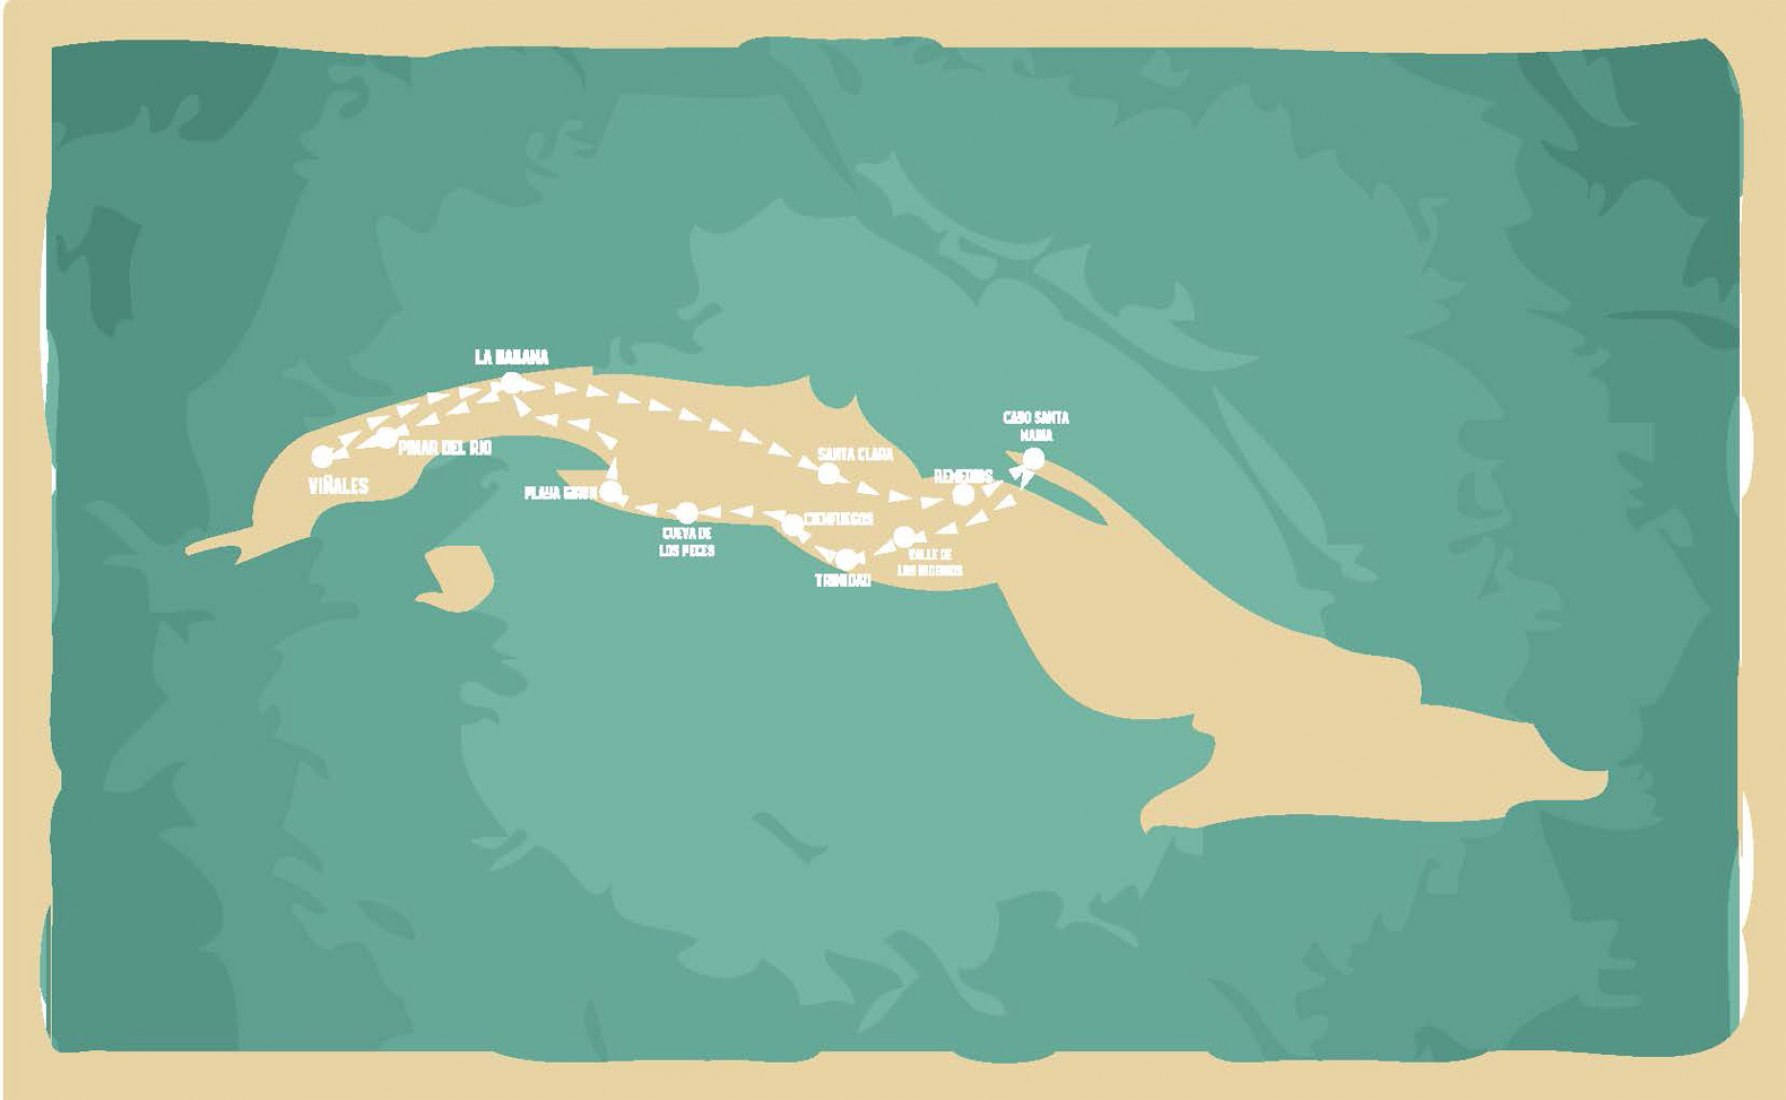 Trip to cuba through the eyes of Felipe Pich. Map of the journey made through Cuba. Image © Felipe Pitch.